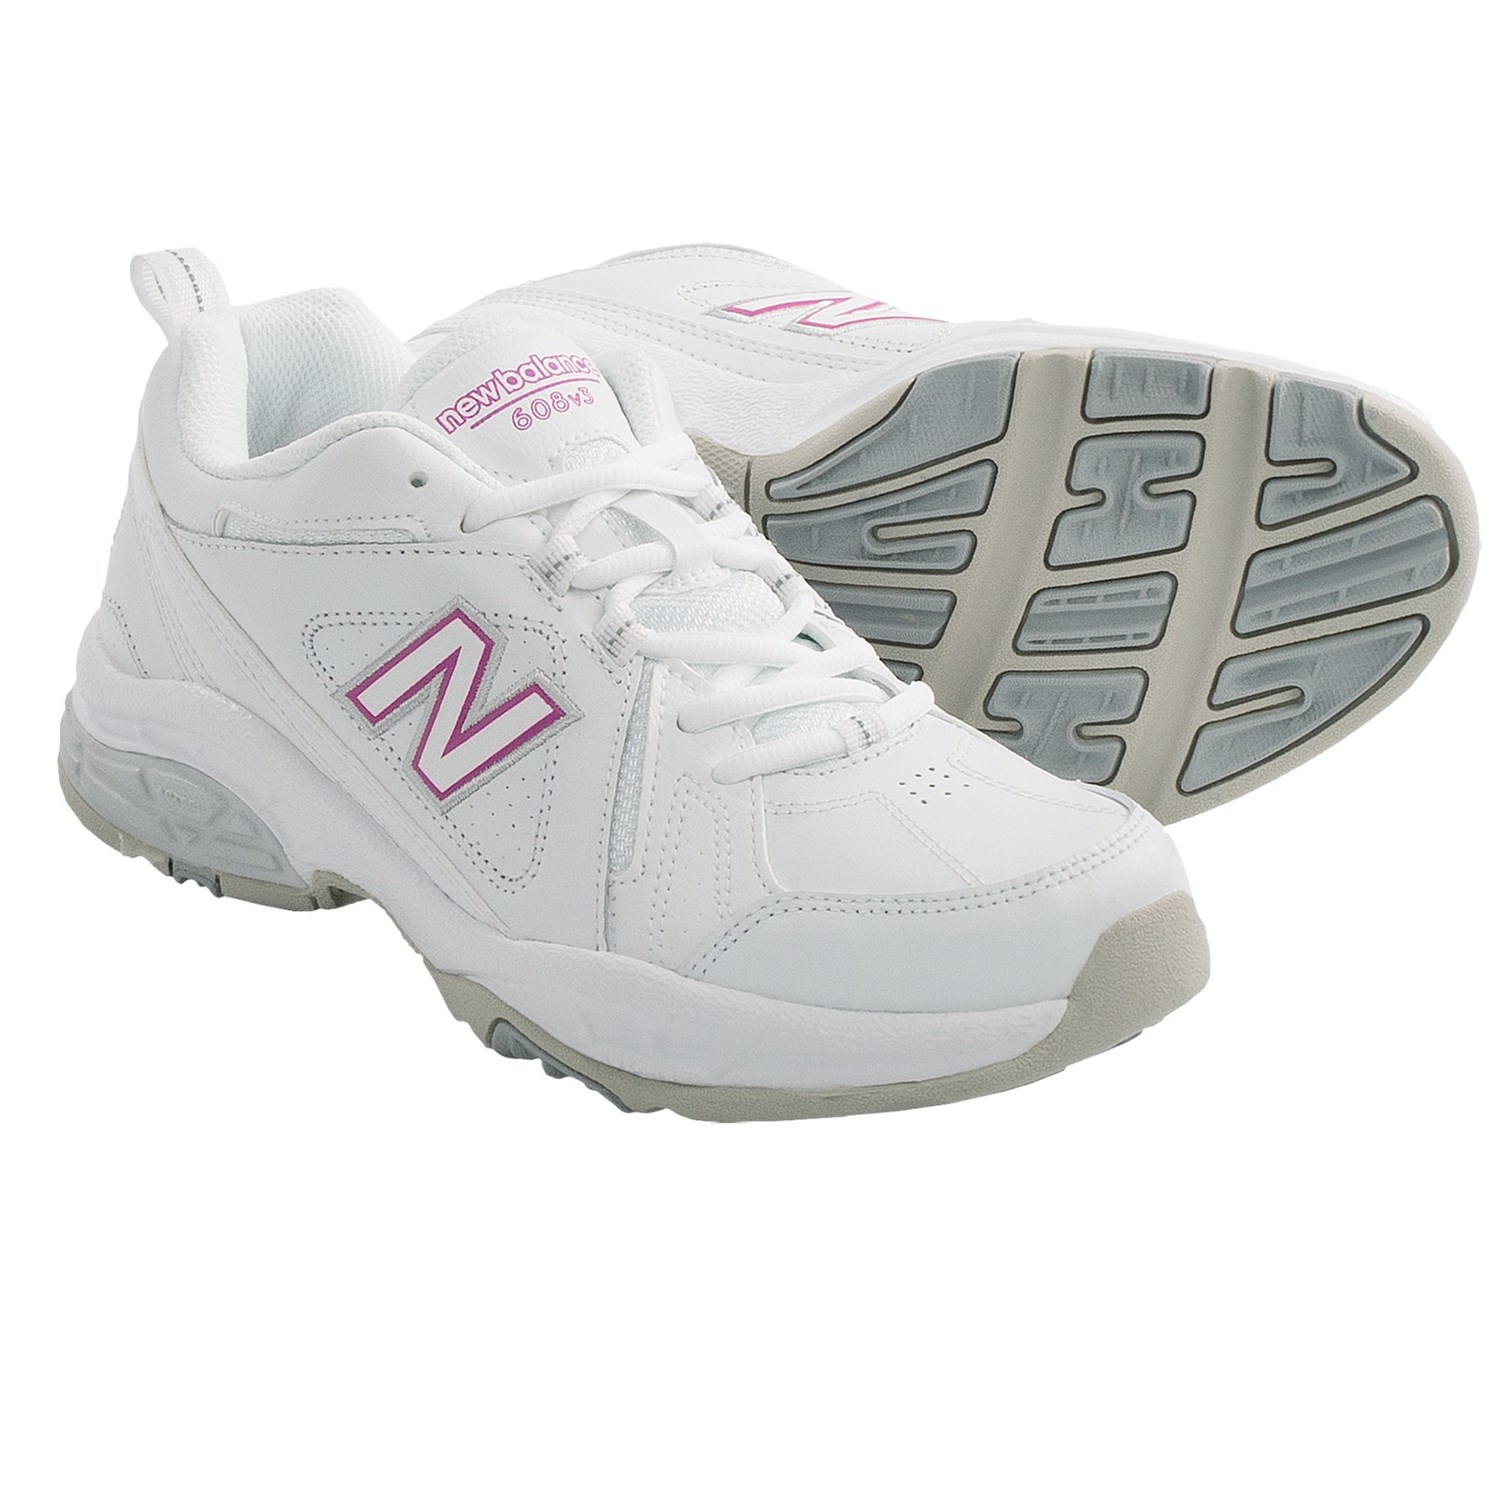 New Balance 608V3 Cross Training Shoes (For Women) in White/Pink